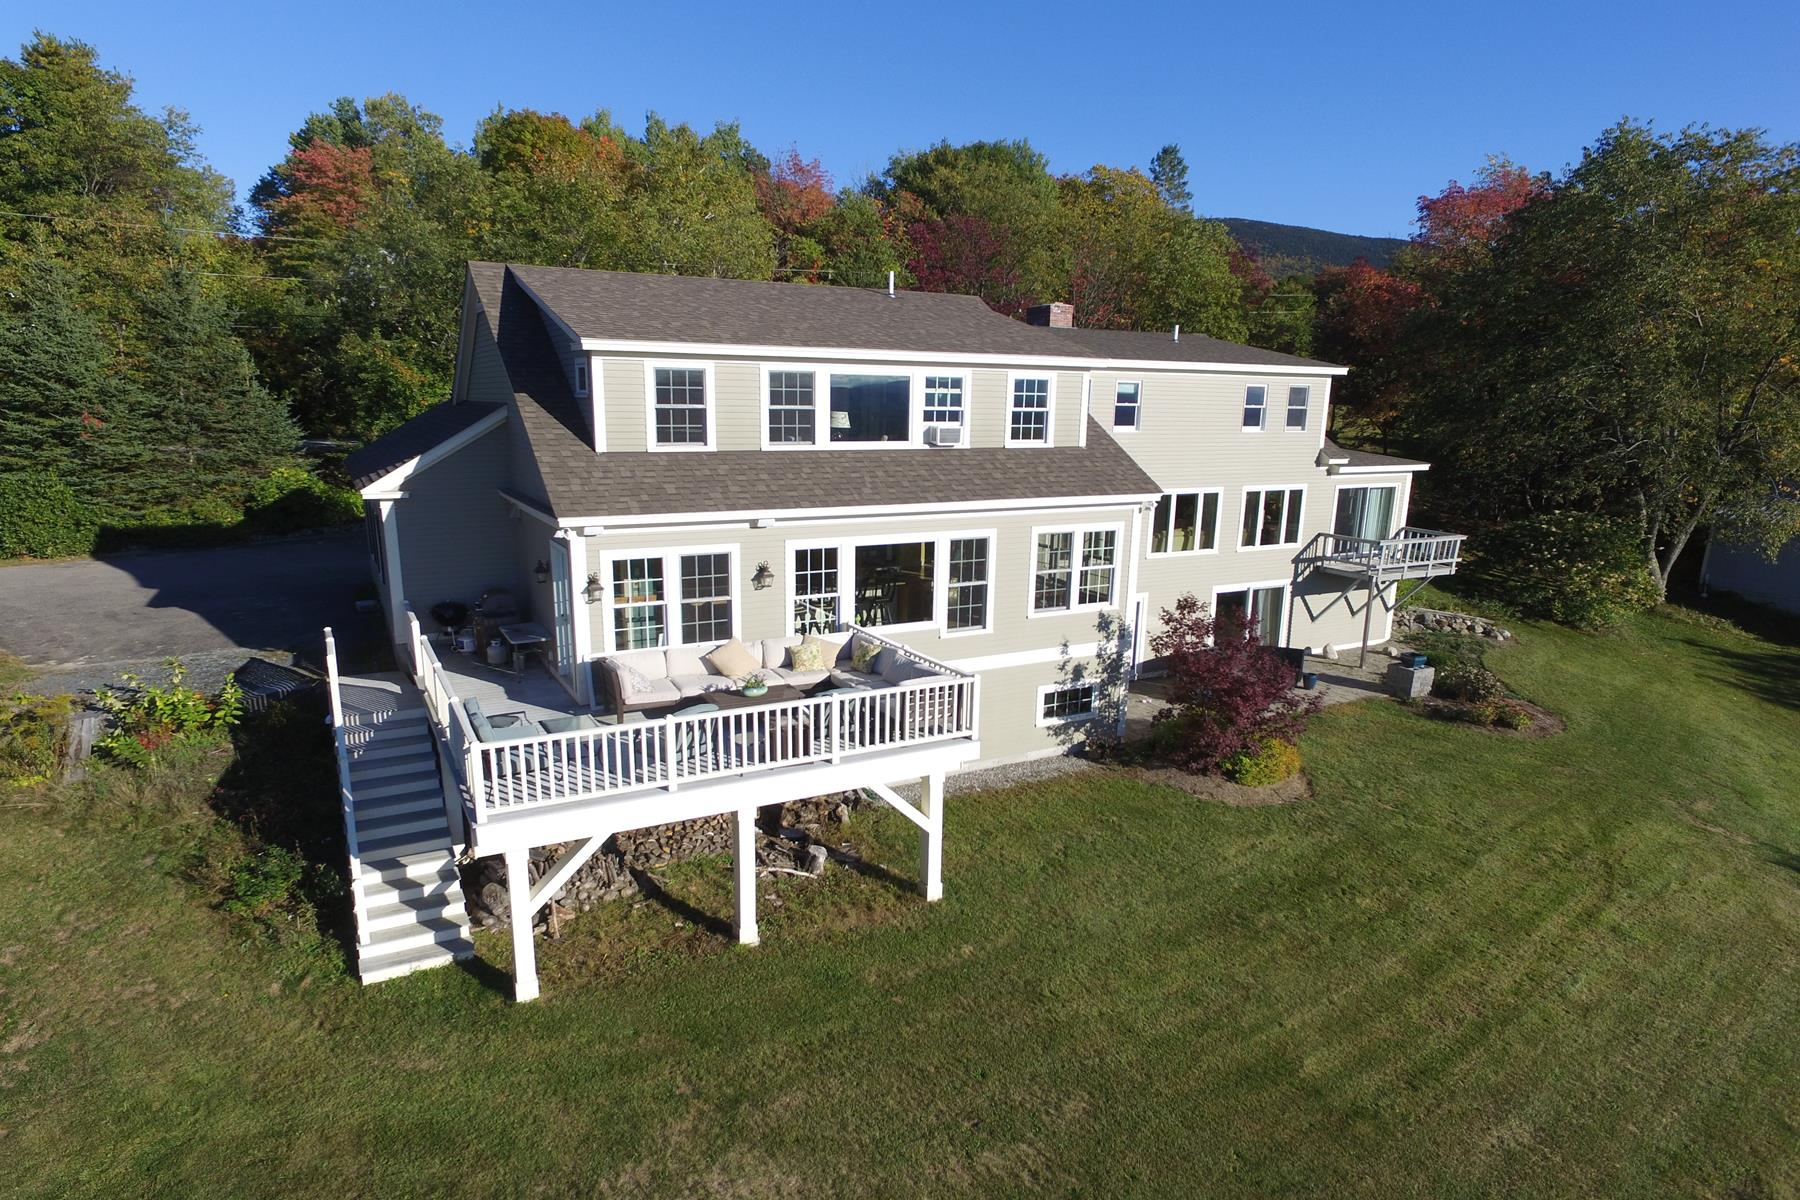 Single Family Home for Sale at 276 Kearsarge Mountain Road, Wilmot 276 Kearsarge Mountain Rd Wilmot, New Hampshire, 03287 United States